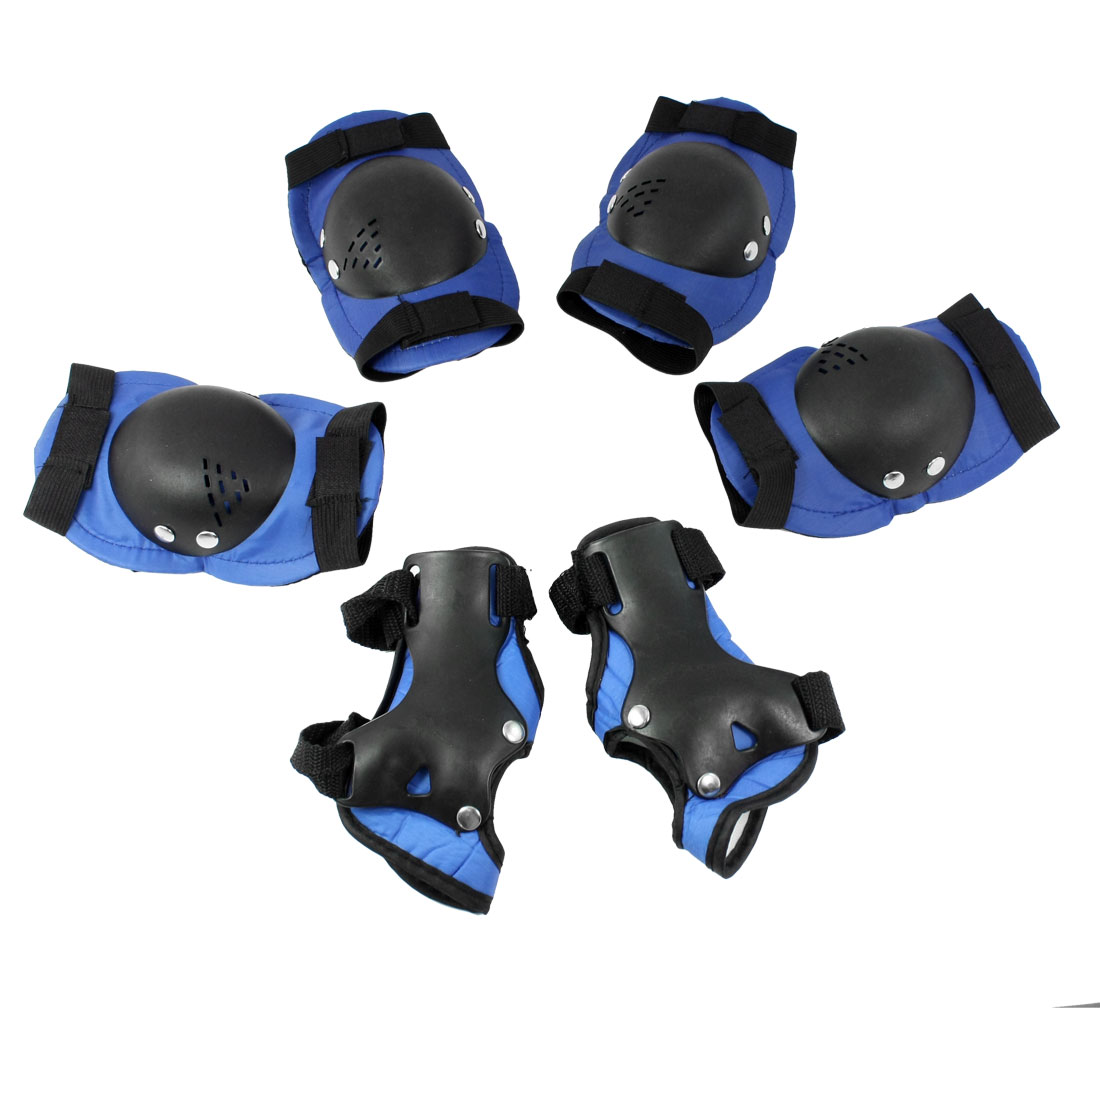 Set 6 in 1 Hoop Loop Closure Protective Elbow Knee Palm Support Black Blue for Kid